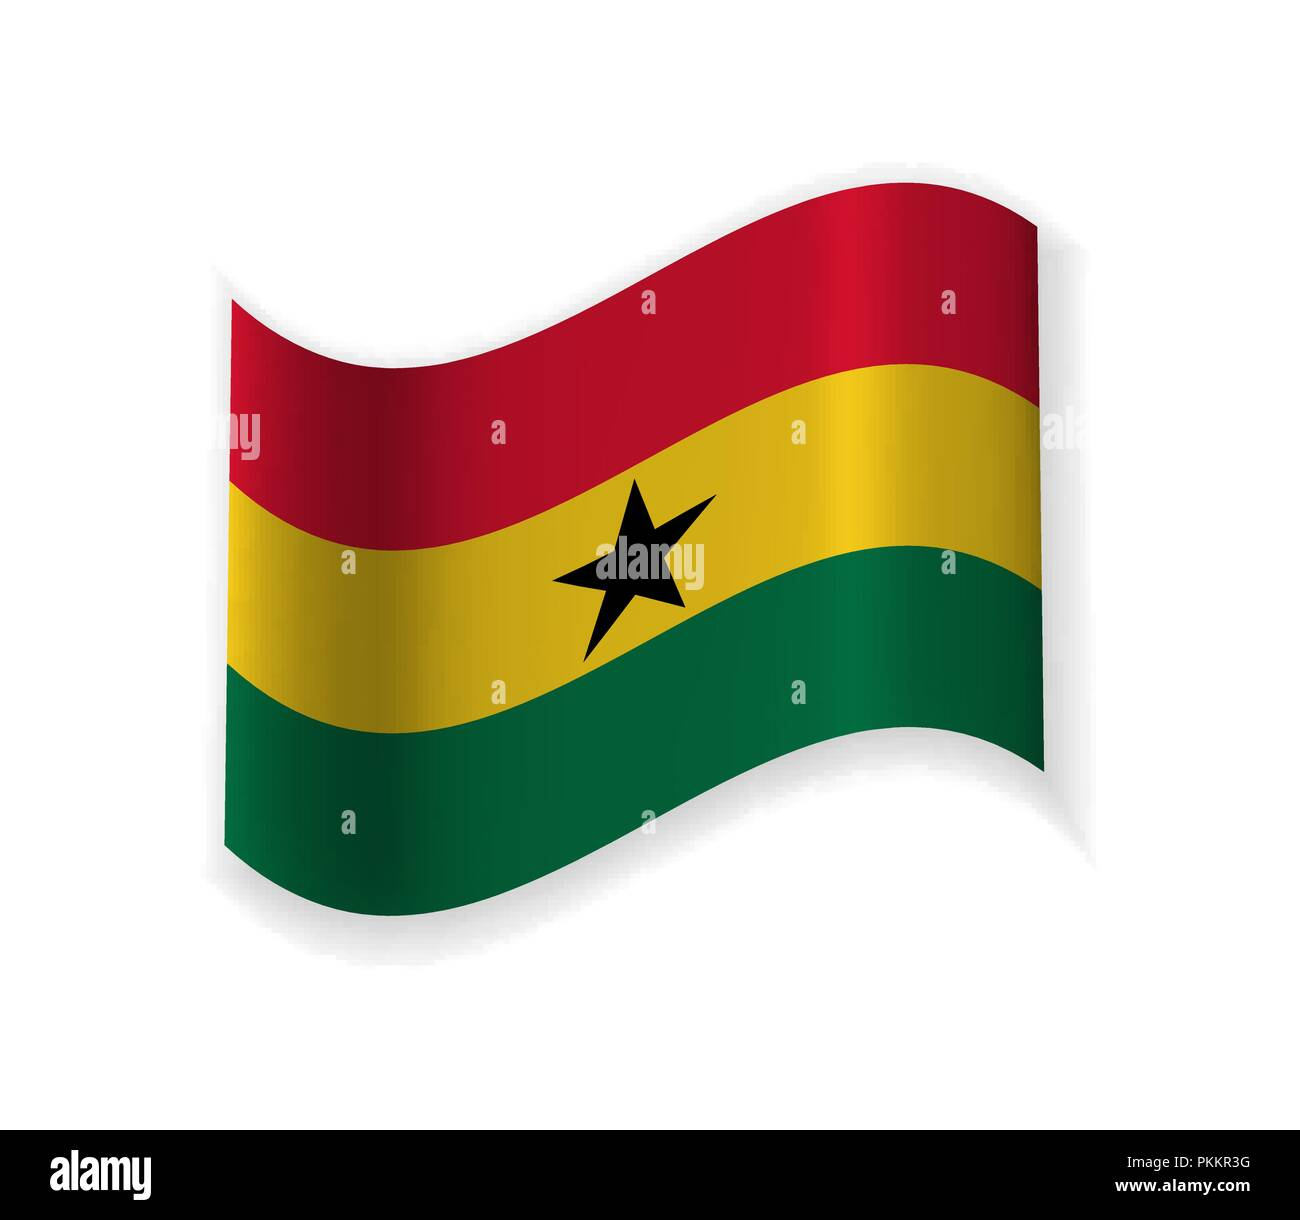 The Flag Of Ghana. Country in West Africa. Vector illustration. The Capital Accra. - Stock Vector